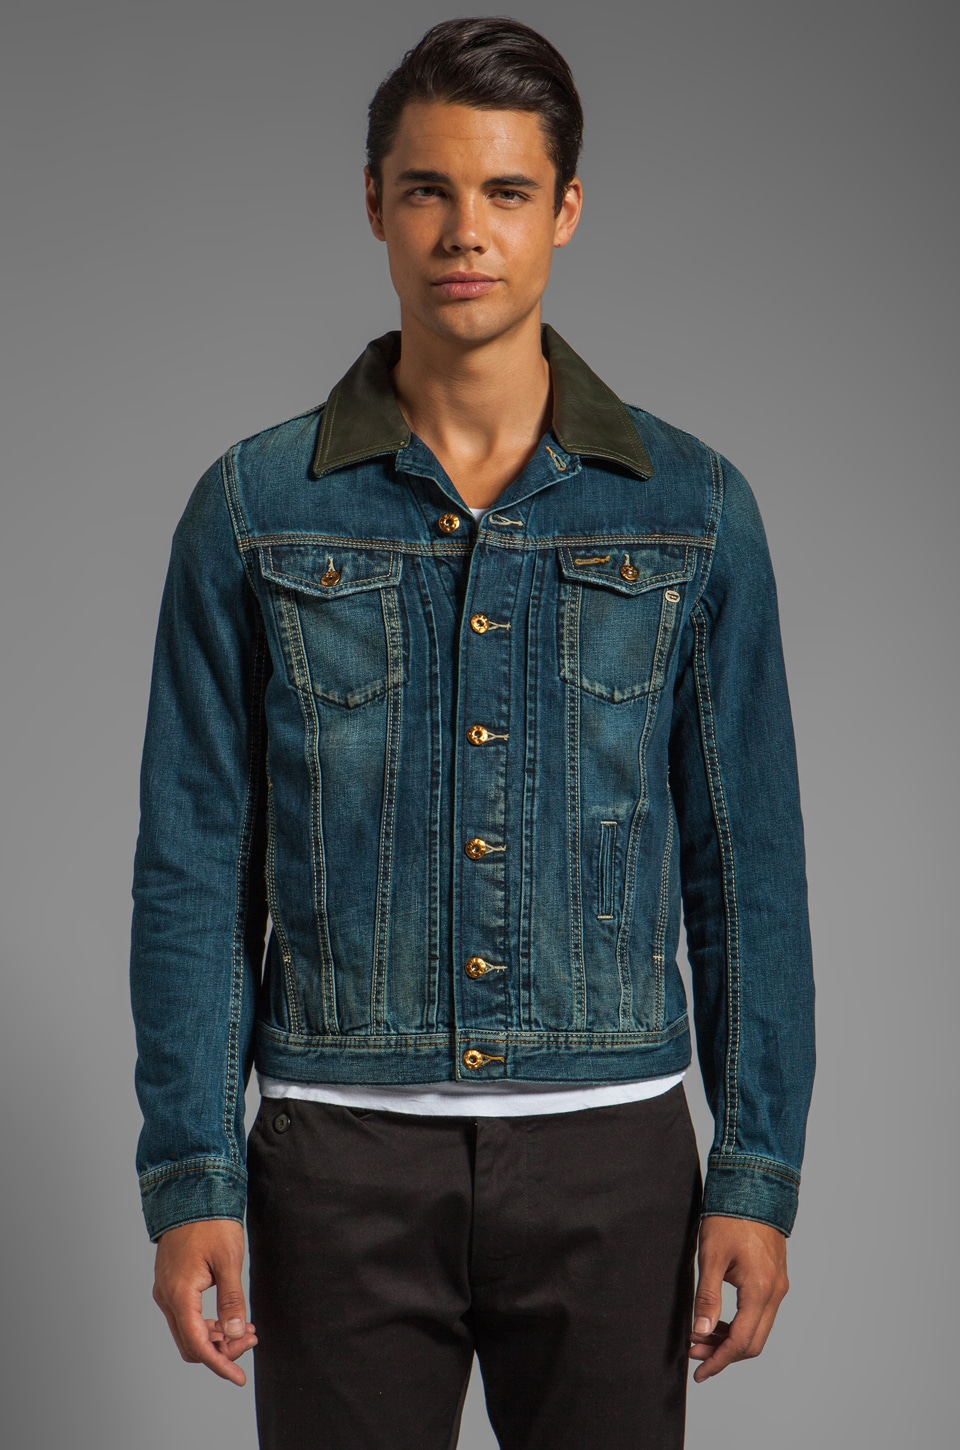 Diesel Elshar Jacket in Denim